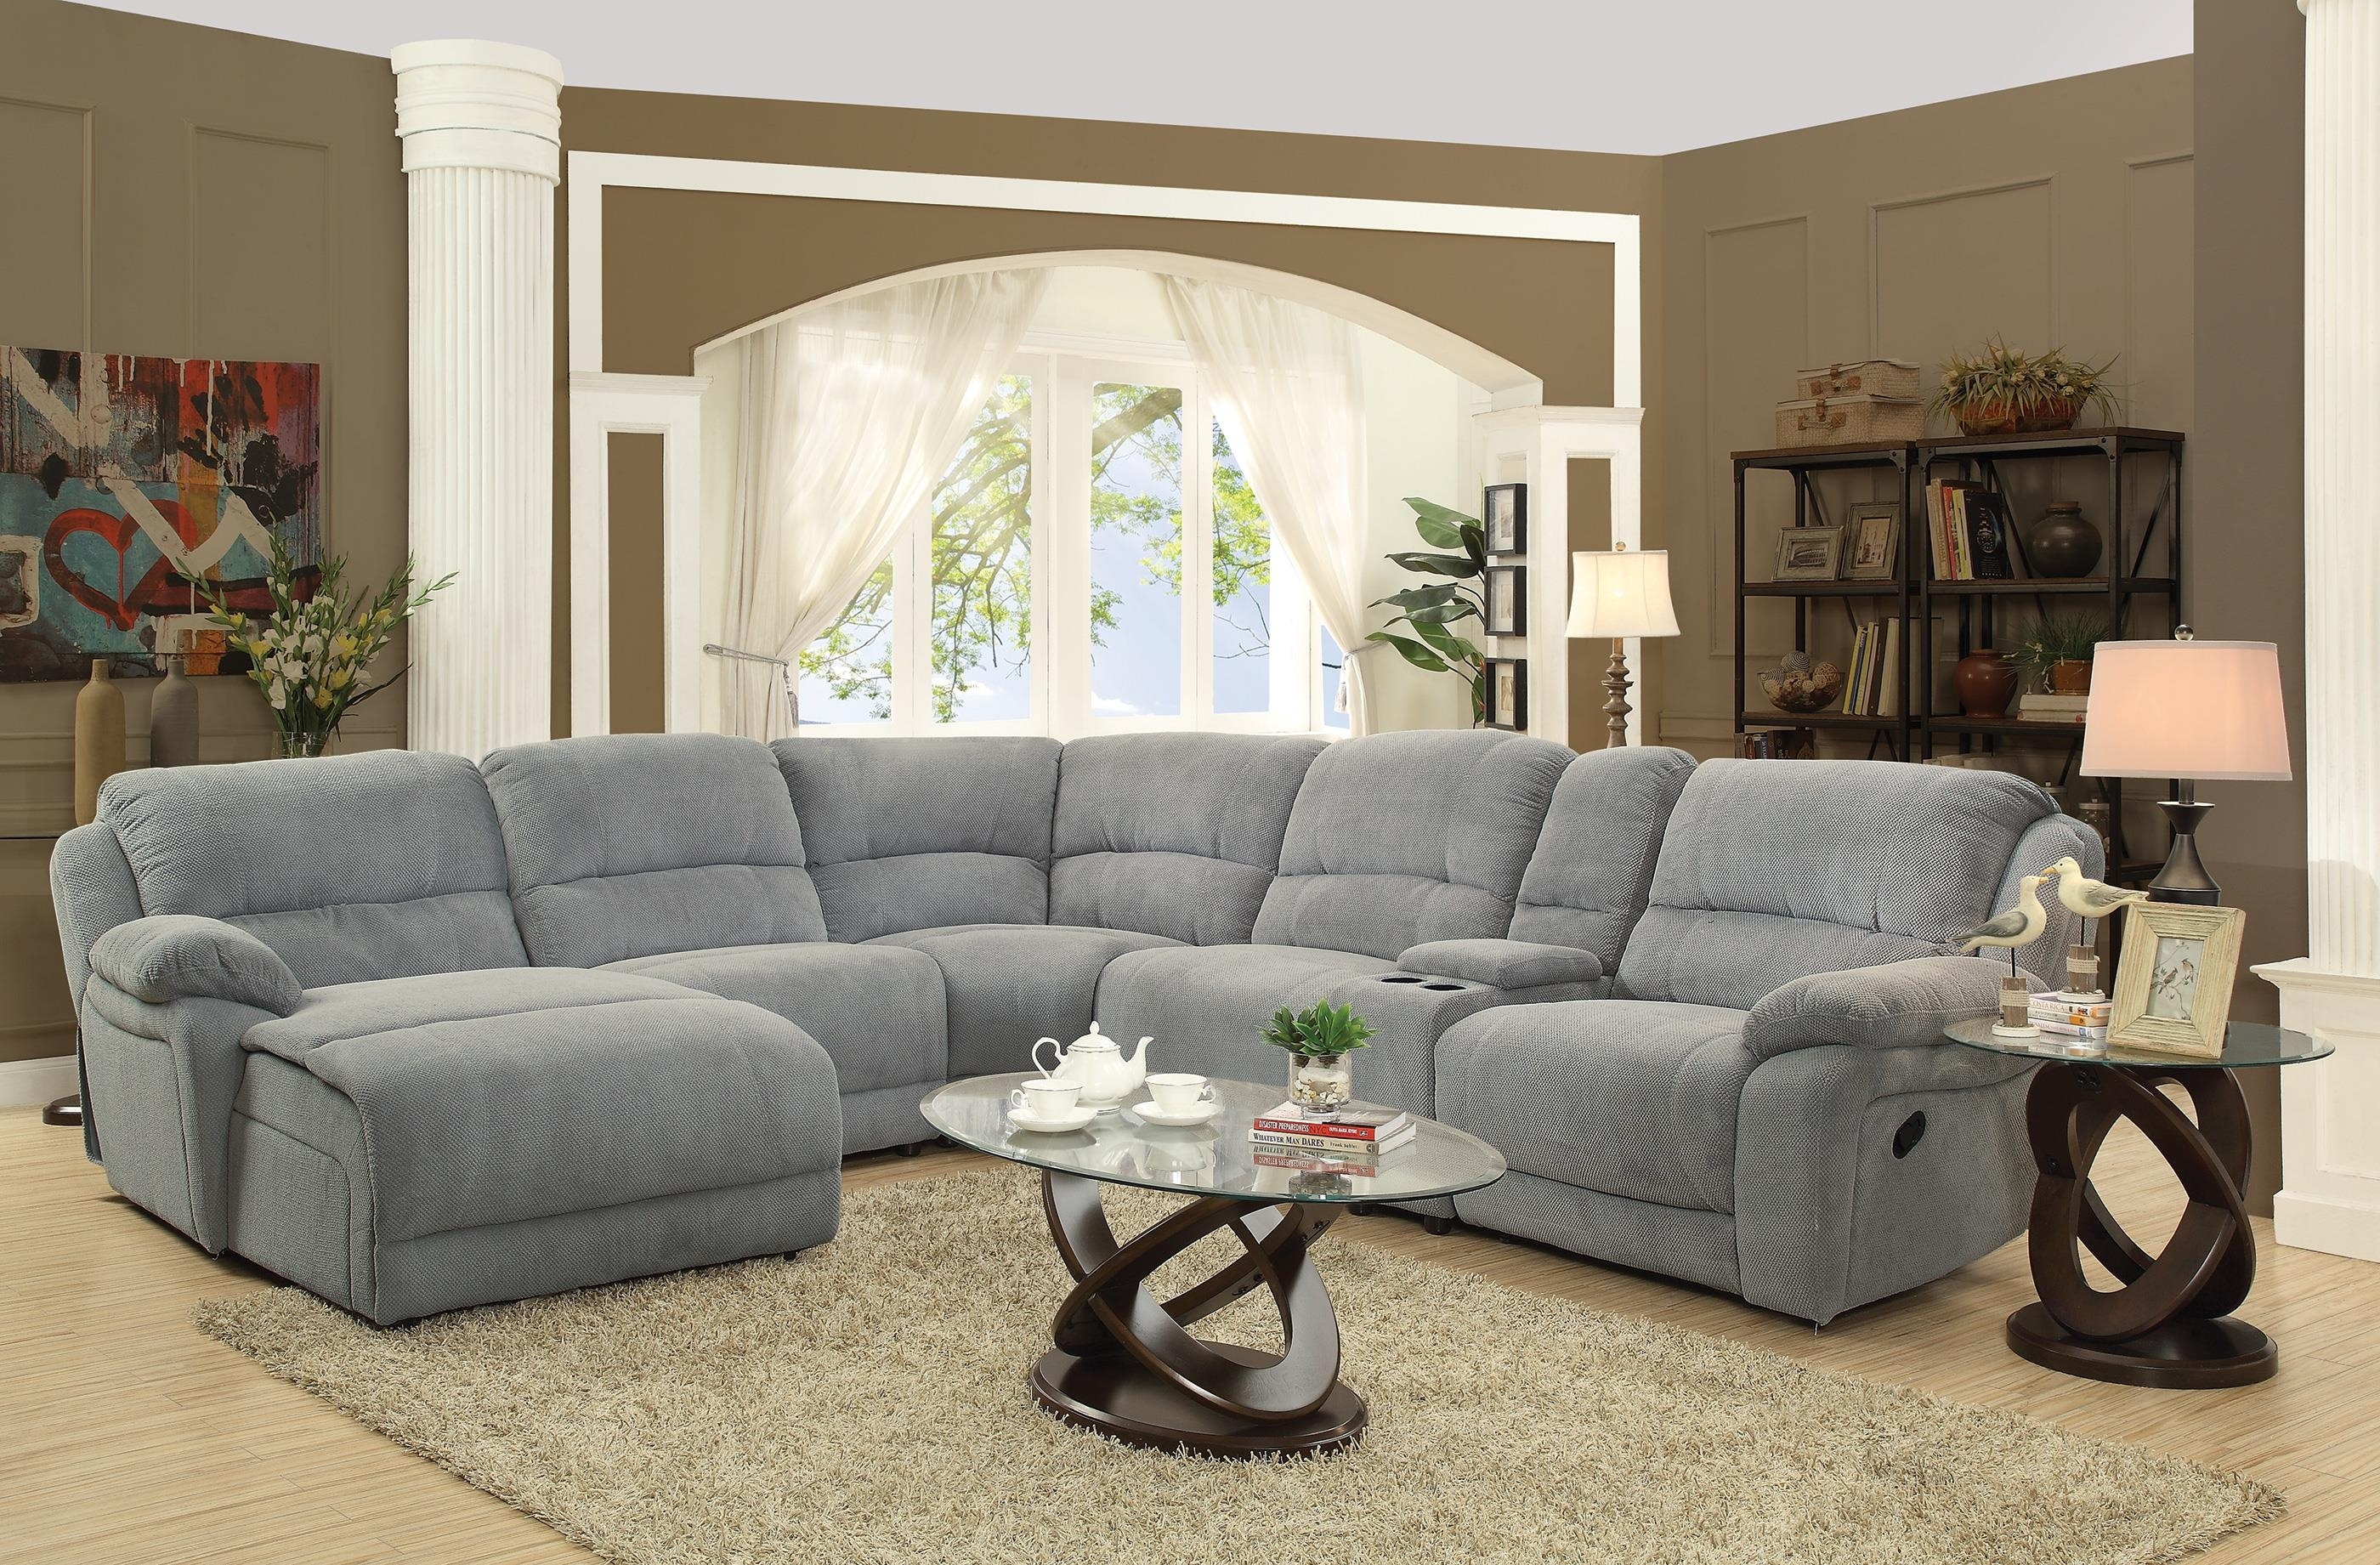 Sofa Couches Tanectional Microfiber Black Fabric Jedd Reclining Pertaining To Jedd Fabric Reclining Sectional Sofas (Image 10 of 10)